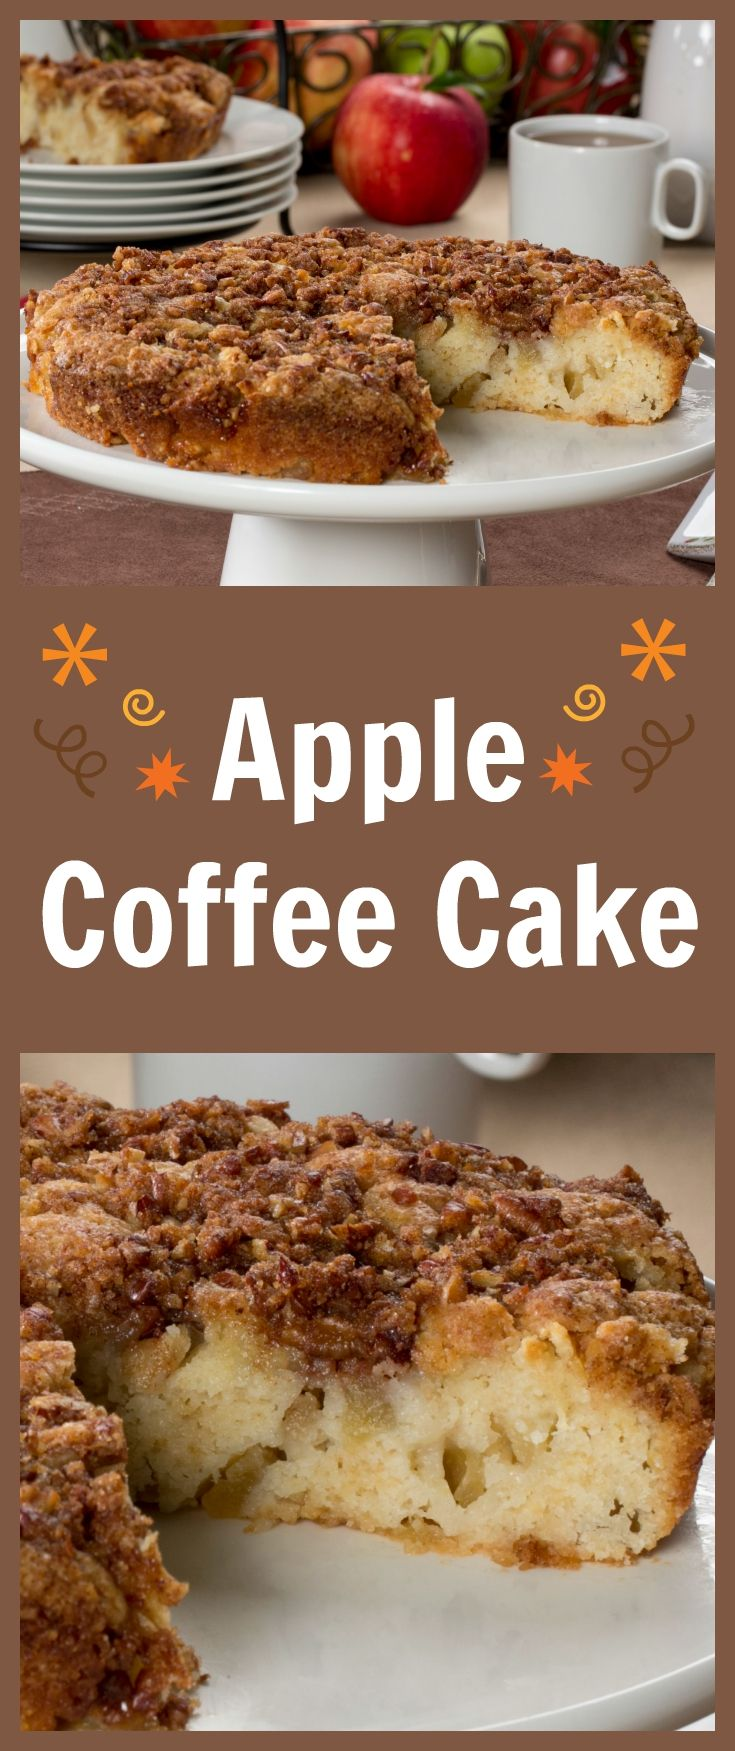 Fresh apples add extra-fall taste to this homemade coffee cake. Serve it warm out of the oven and enjoy!